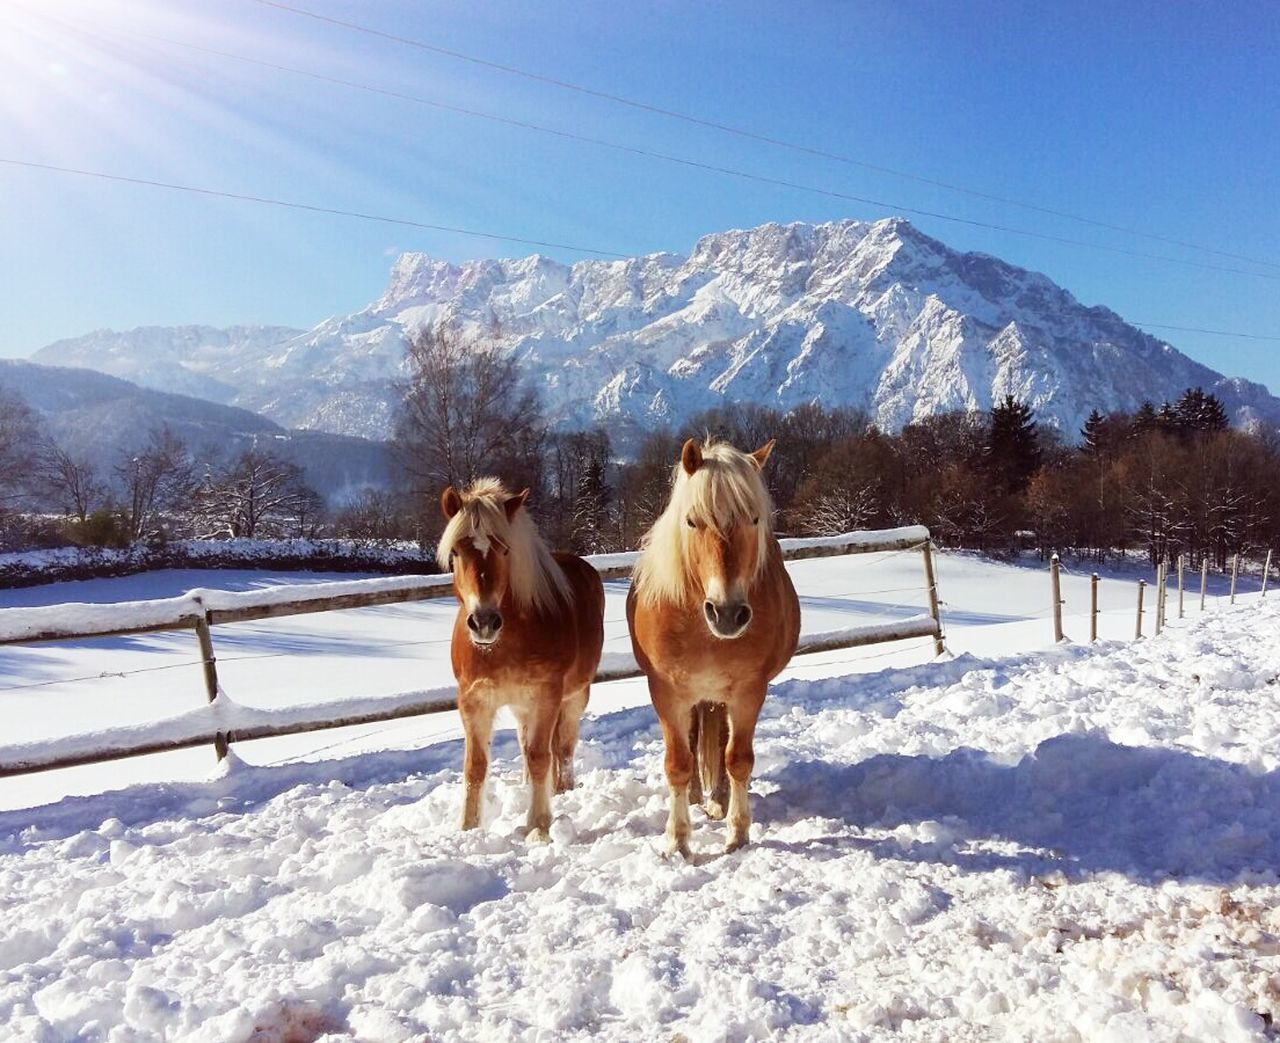 snow, winter, cold temperature, domestic animals, animal themes, nature, weather, mountain, mammal, field, day, white color, sunlight, dog, snowcapped mountain, beauty in nature, sky, scenics, outdoors, pets, landscape, frozen, mountain range, no people